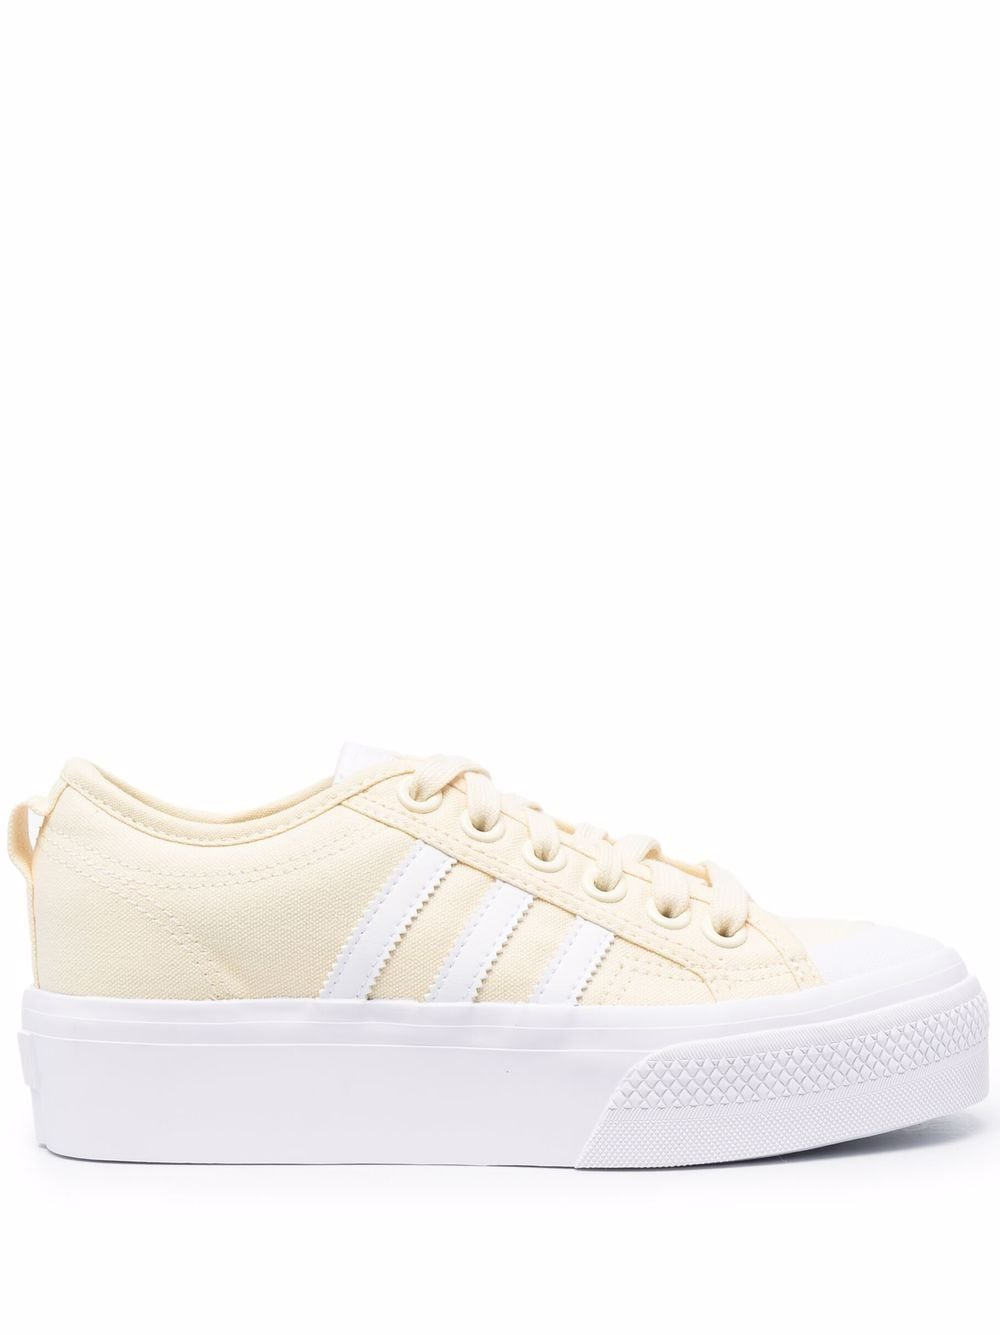 <p class='small-title'>ADIDAS ORIGINAL</p>Nizza sneakers with raised sole